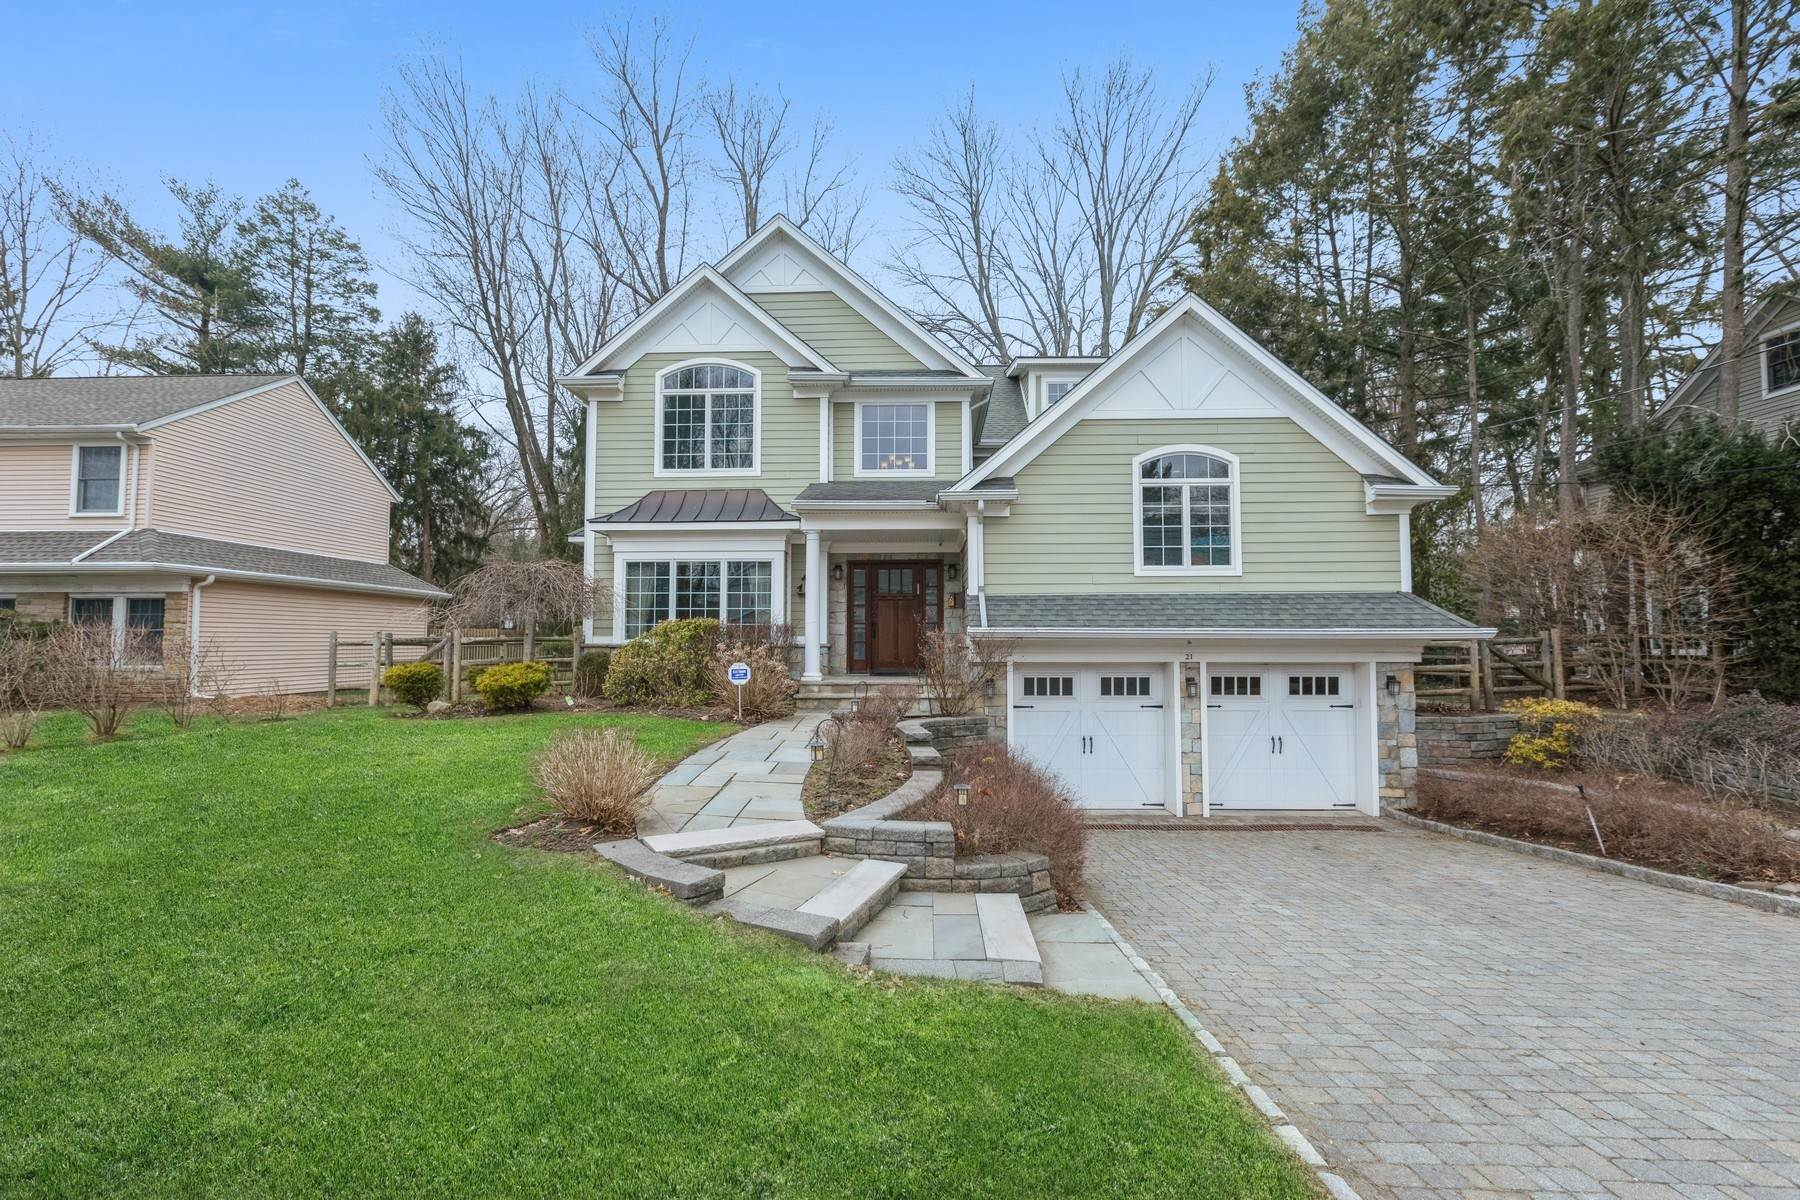 Single Family Homes for Sale at Handsome & Charming 21 Jefferson Ave Tenafly, New Jersey 07670 United States